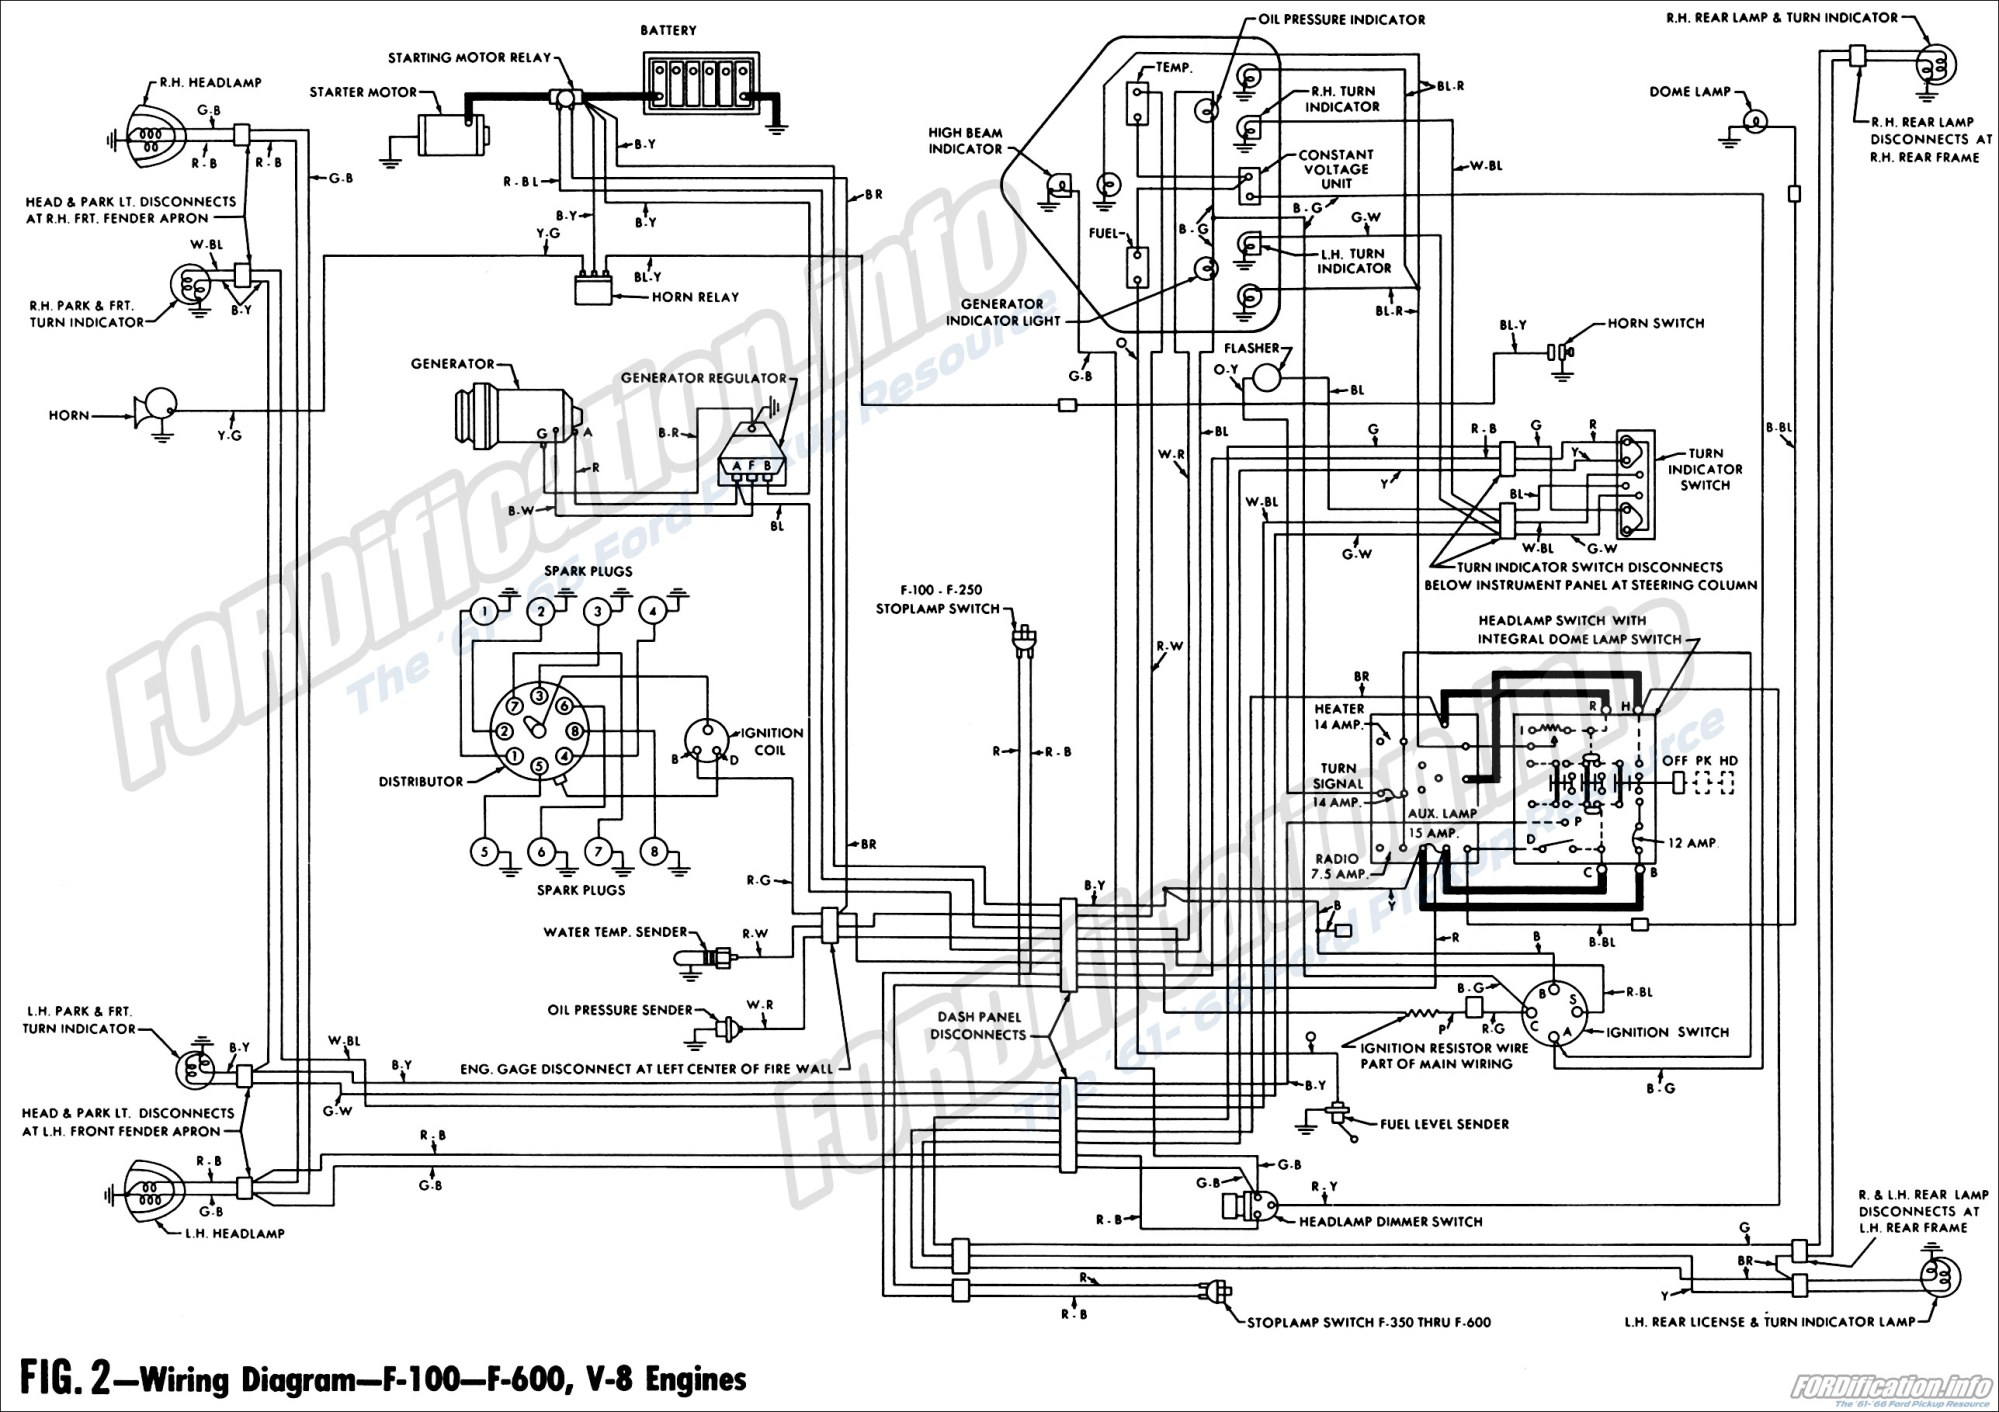 hight resolution of 1961 ford generator wiring diagram wiring diagram home 1961 ford ranchero wiring diagram 1961 ford wiring diagram